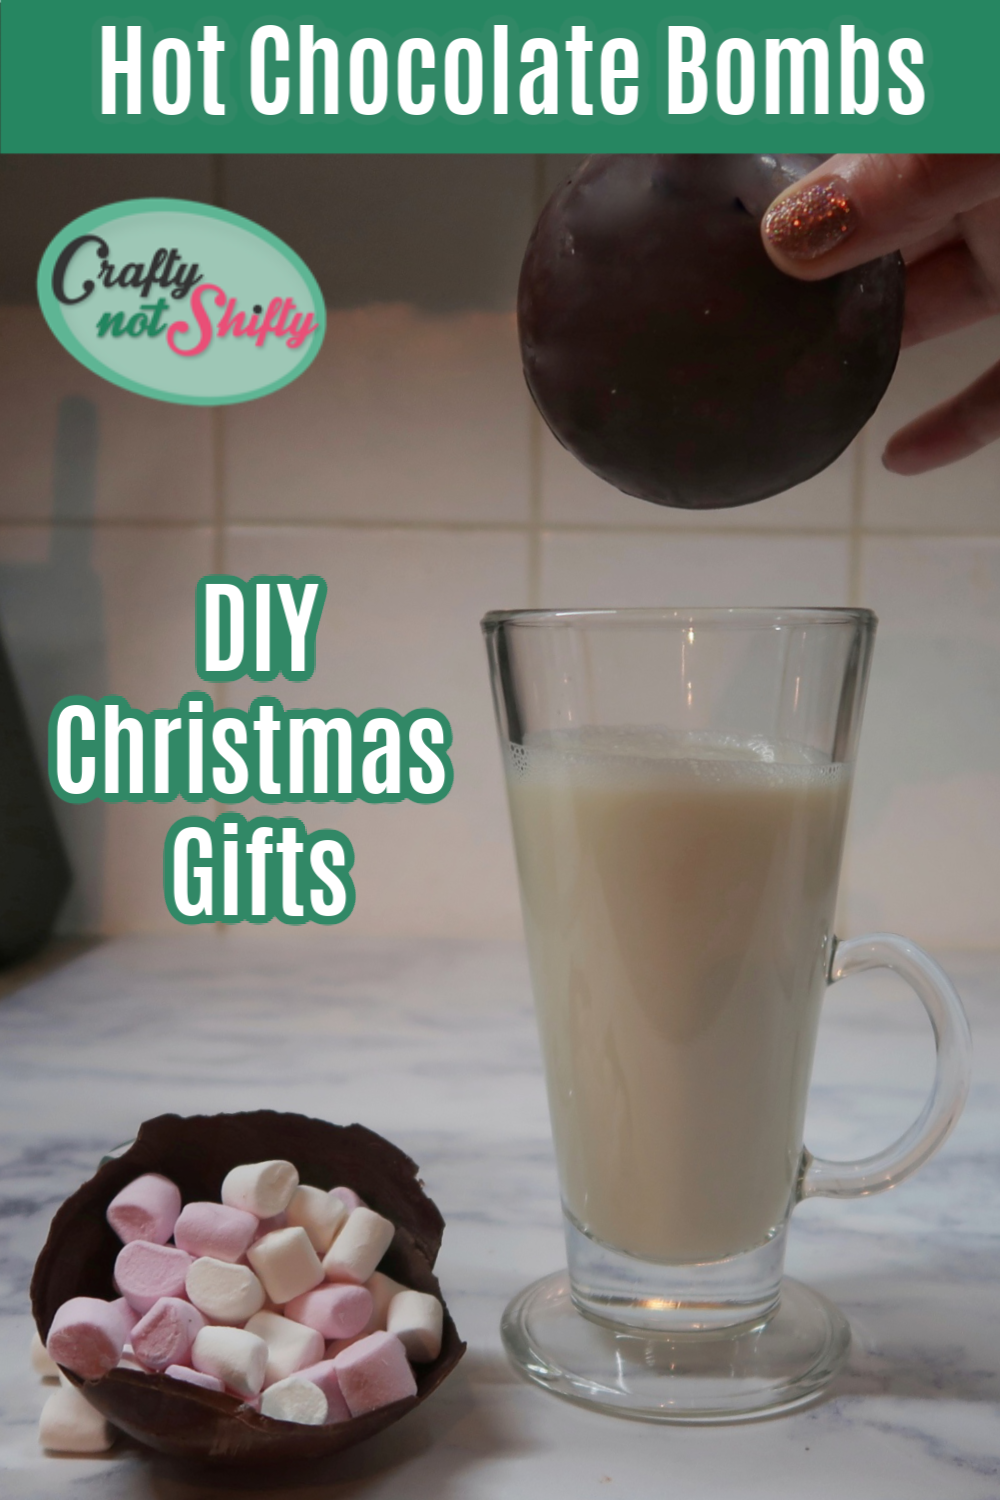 Crafty Not Shifty Blog Diy hot chocolate, Chocolate bomb